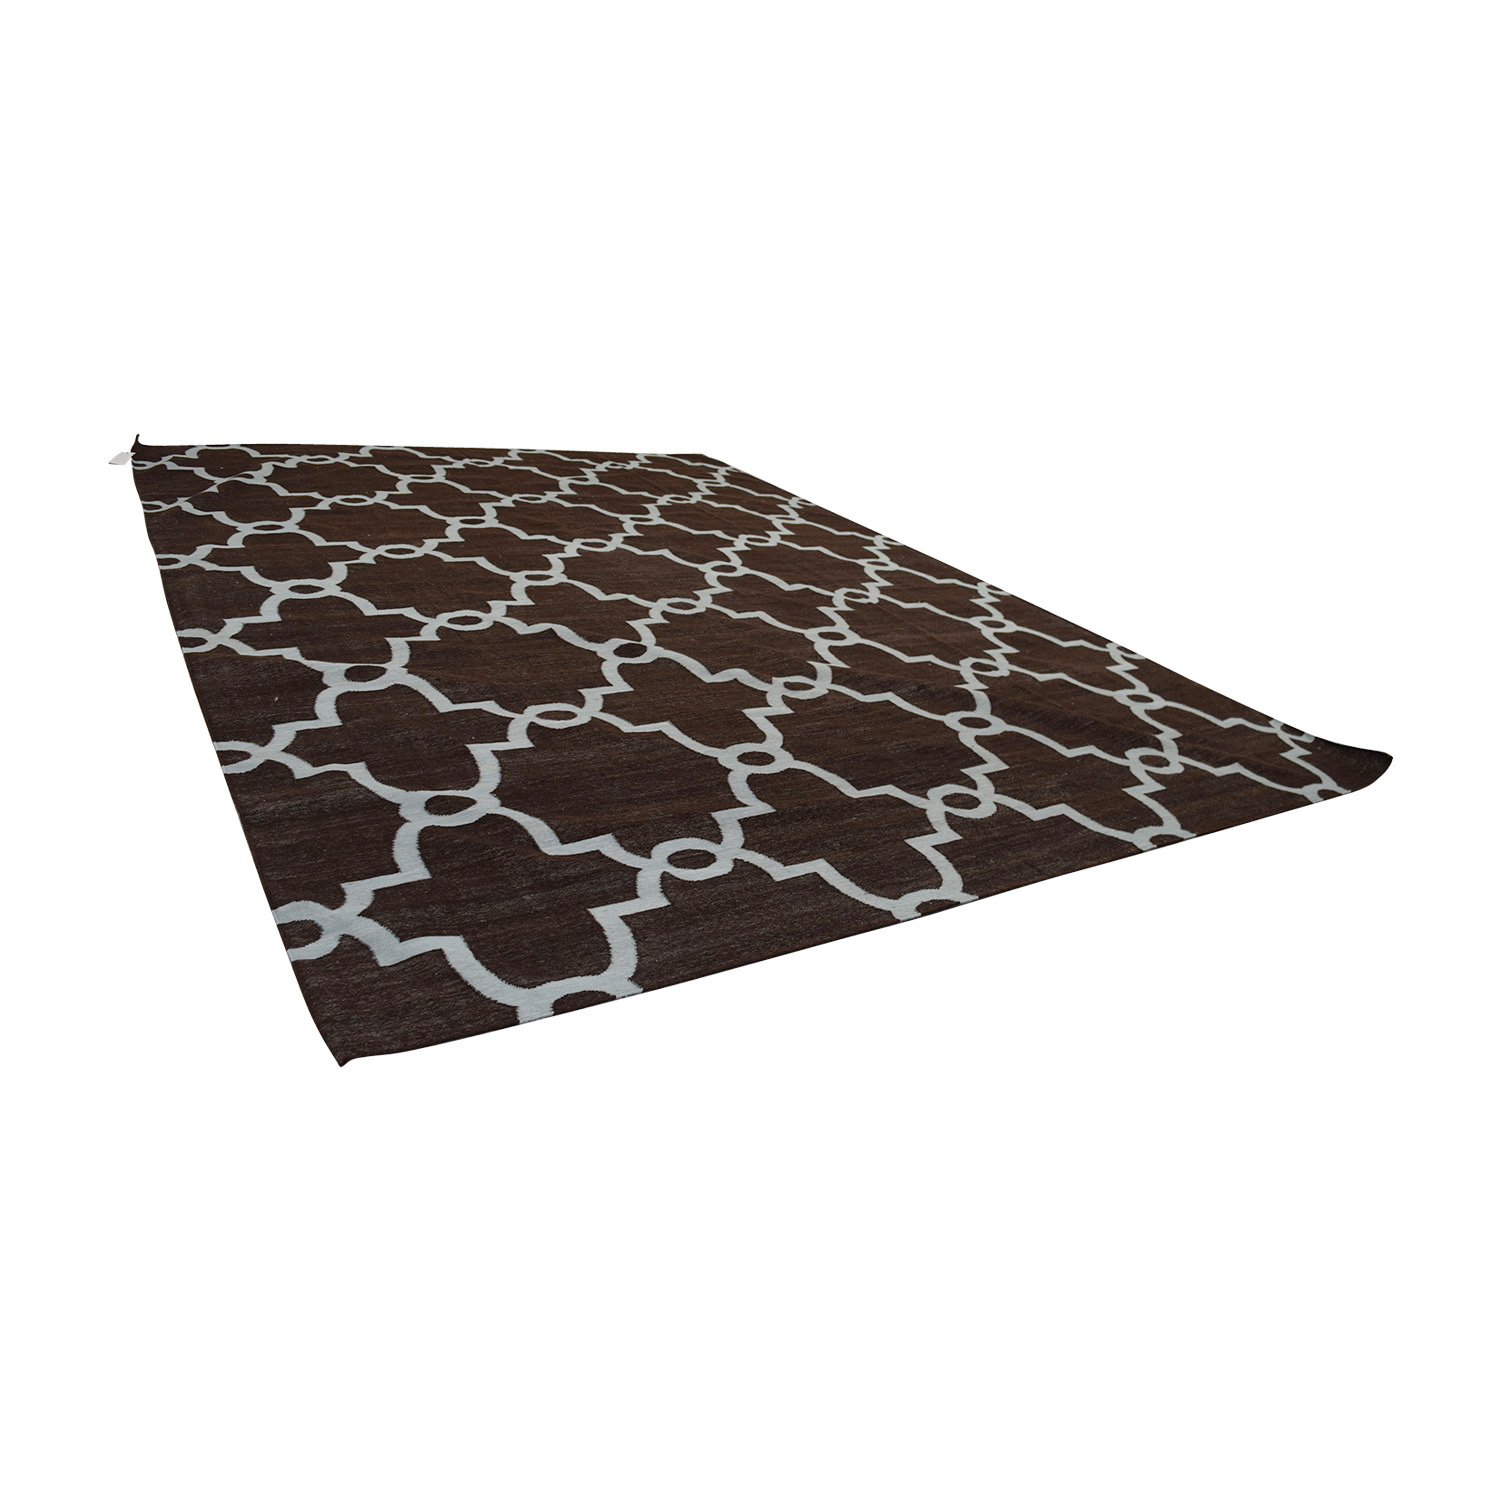 Obeetee Obeetee Brown Dhurrie Hand Knotted Wool Rug nj